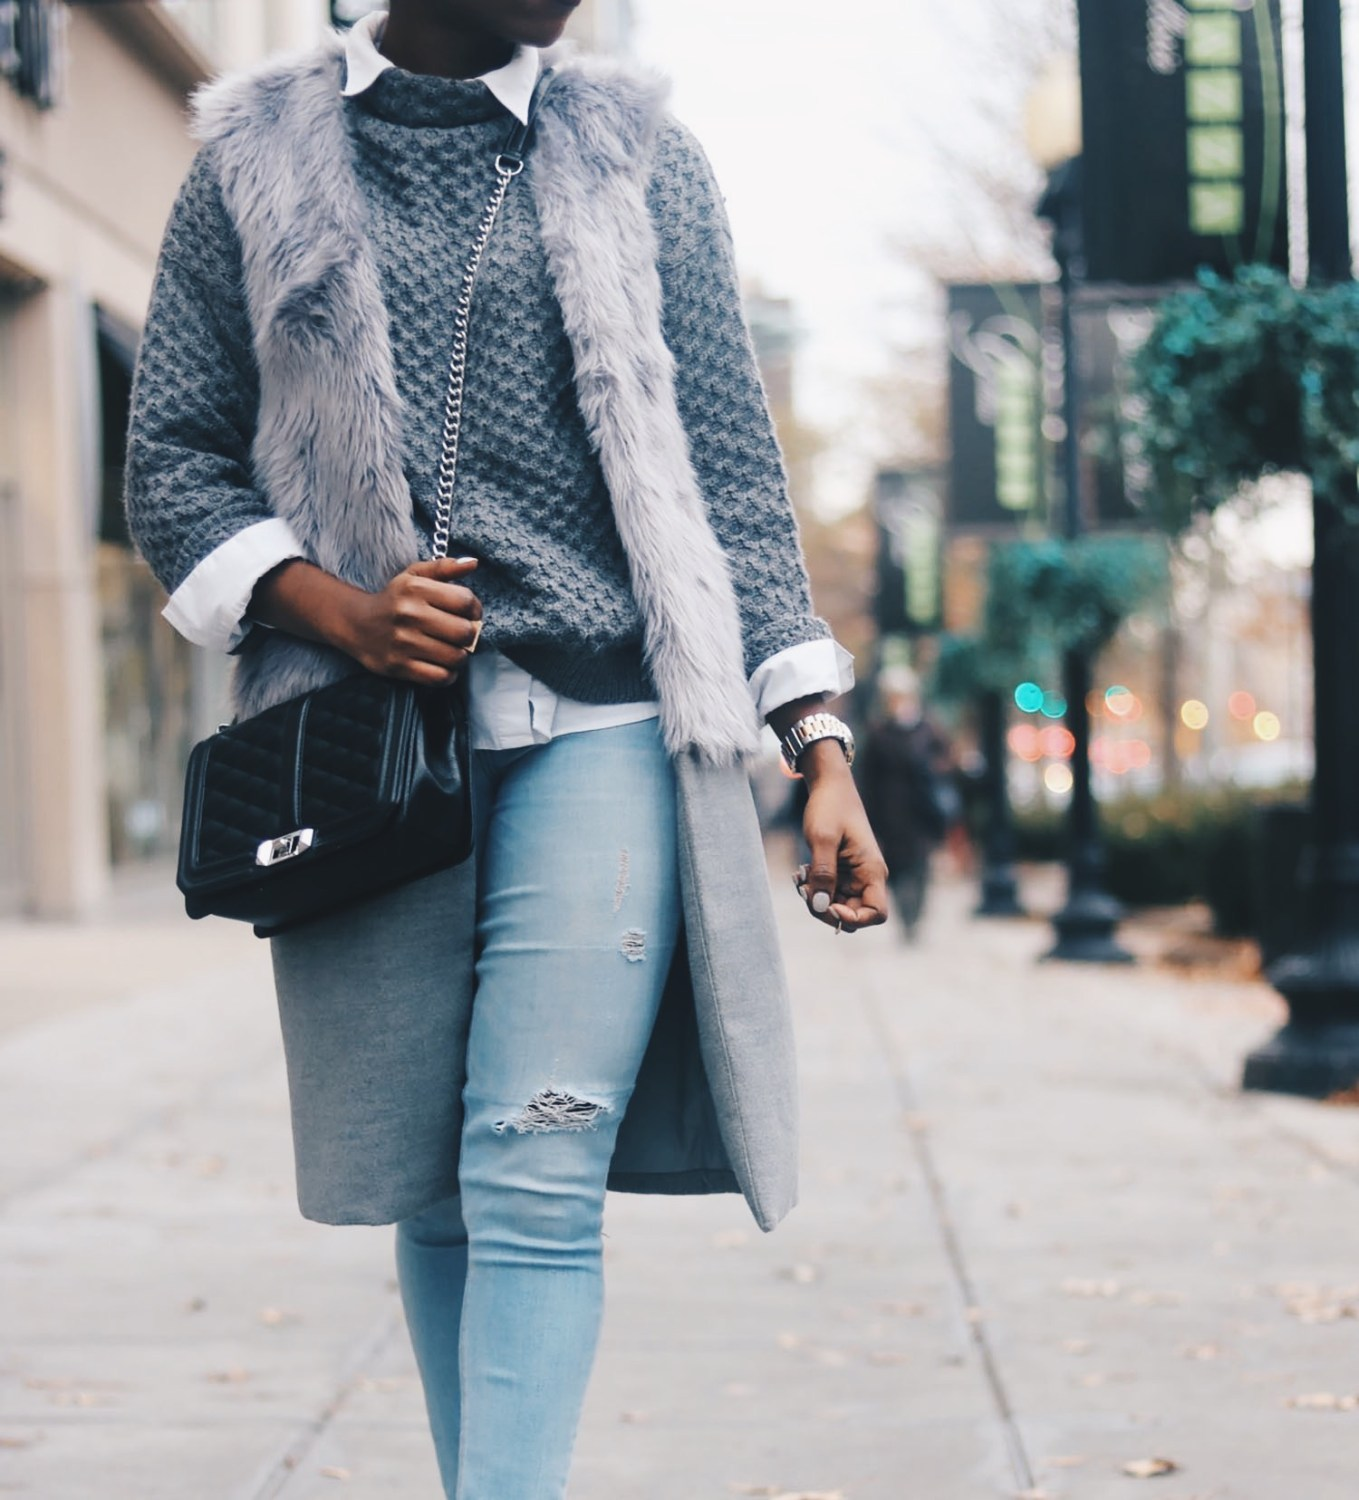 style-synopsis-winter-street-fashion